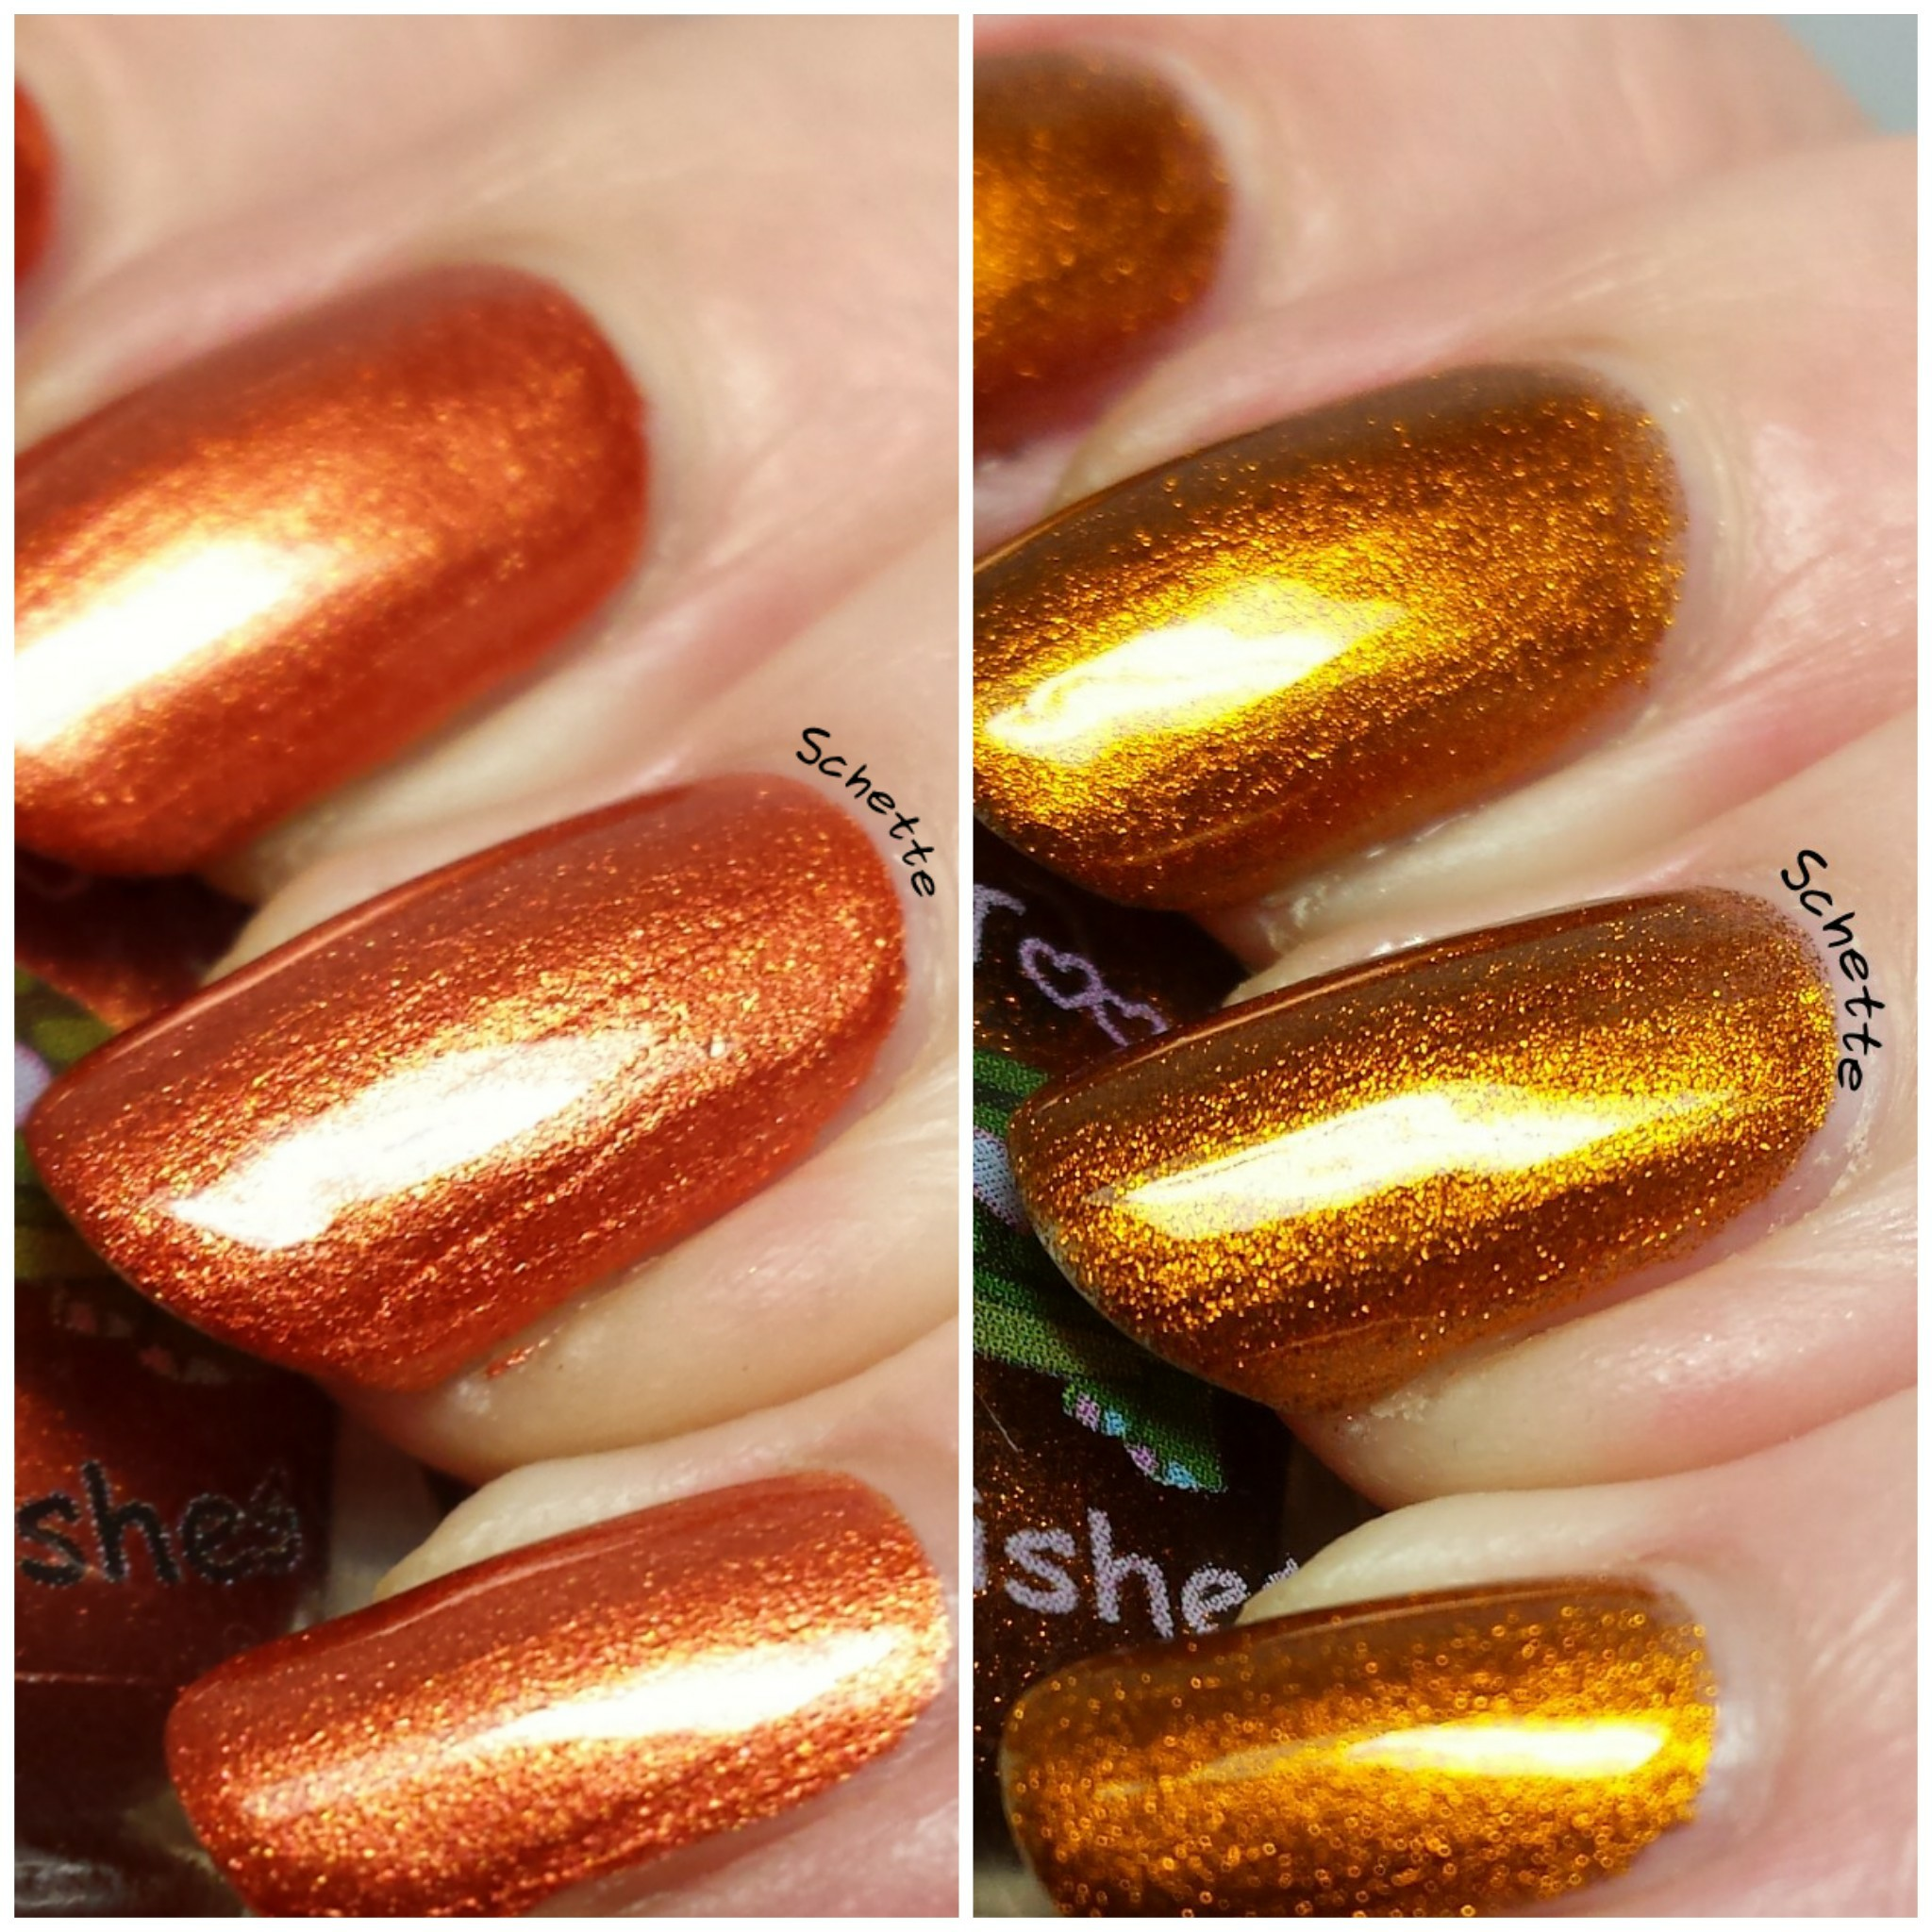 Turtle Tootsie Polish : Smashed Pumpkins, Blood Curdling